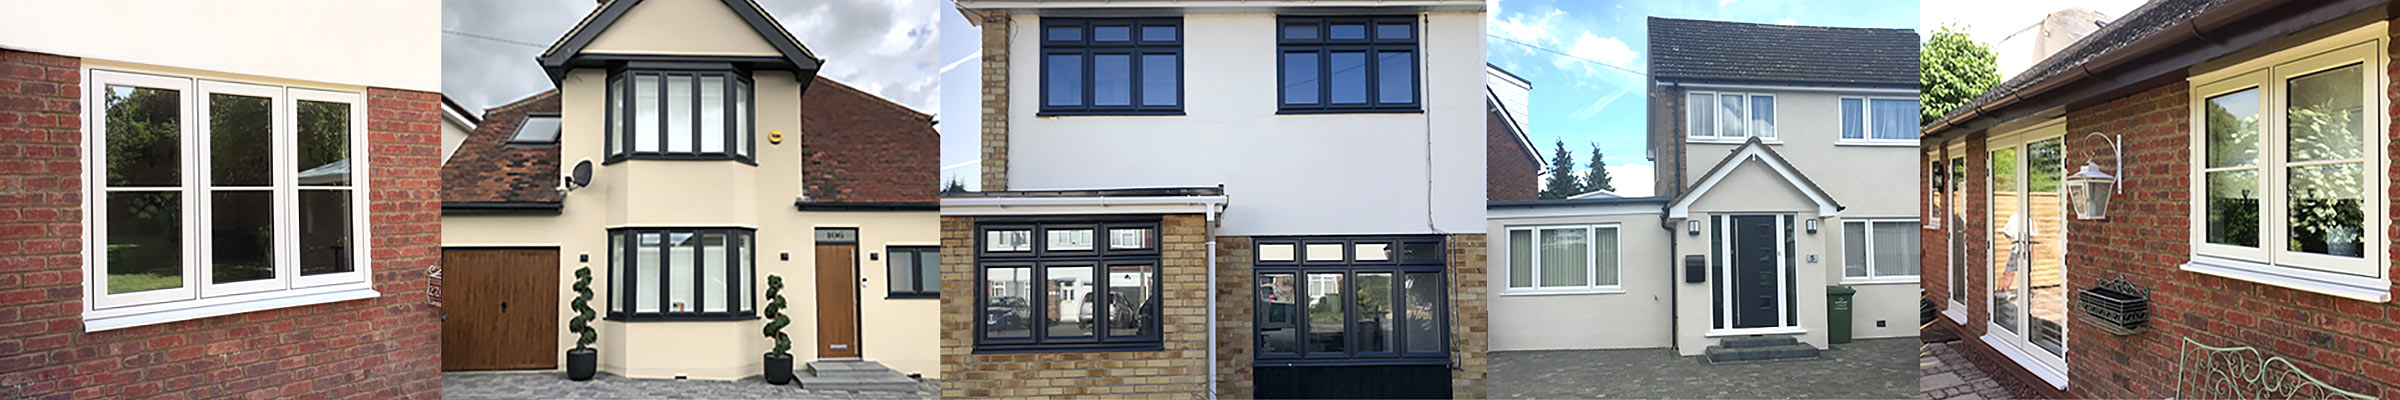 Windows & Doors, Orangeries, Roofs, Extensions, Sovereign Home, Essex - HOME PAGE - v2 (12)